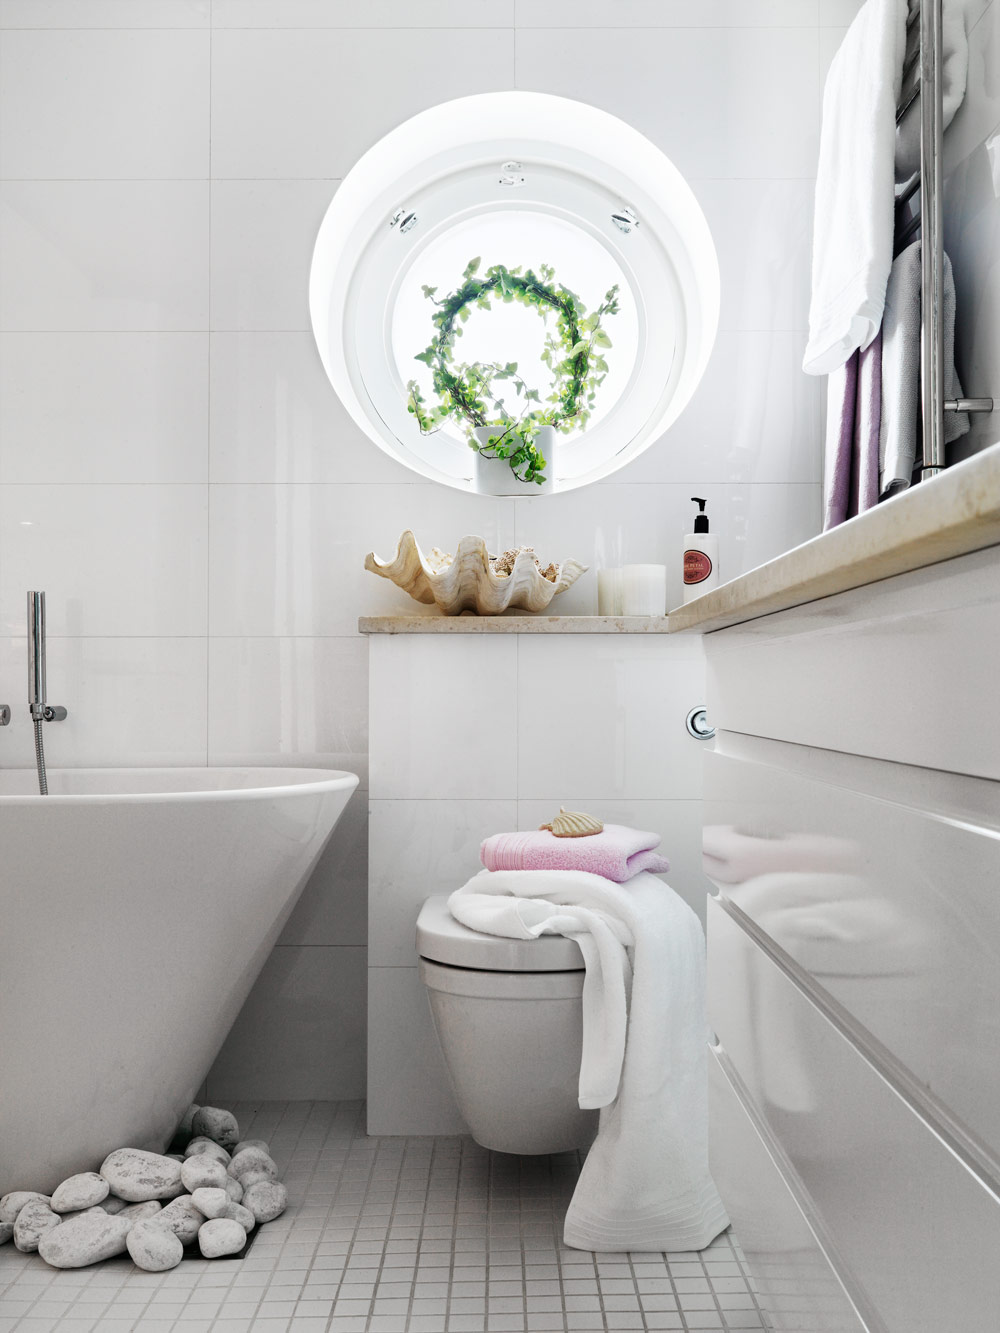 Stylish small bathroom with an unusual decor digsdigs for Little bathroom ideas